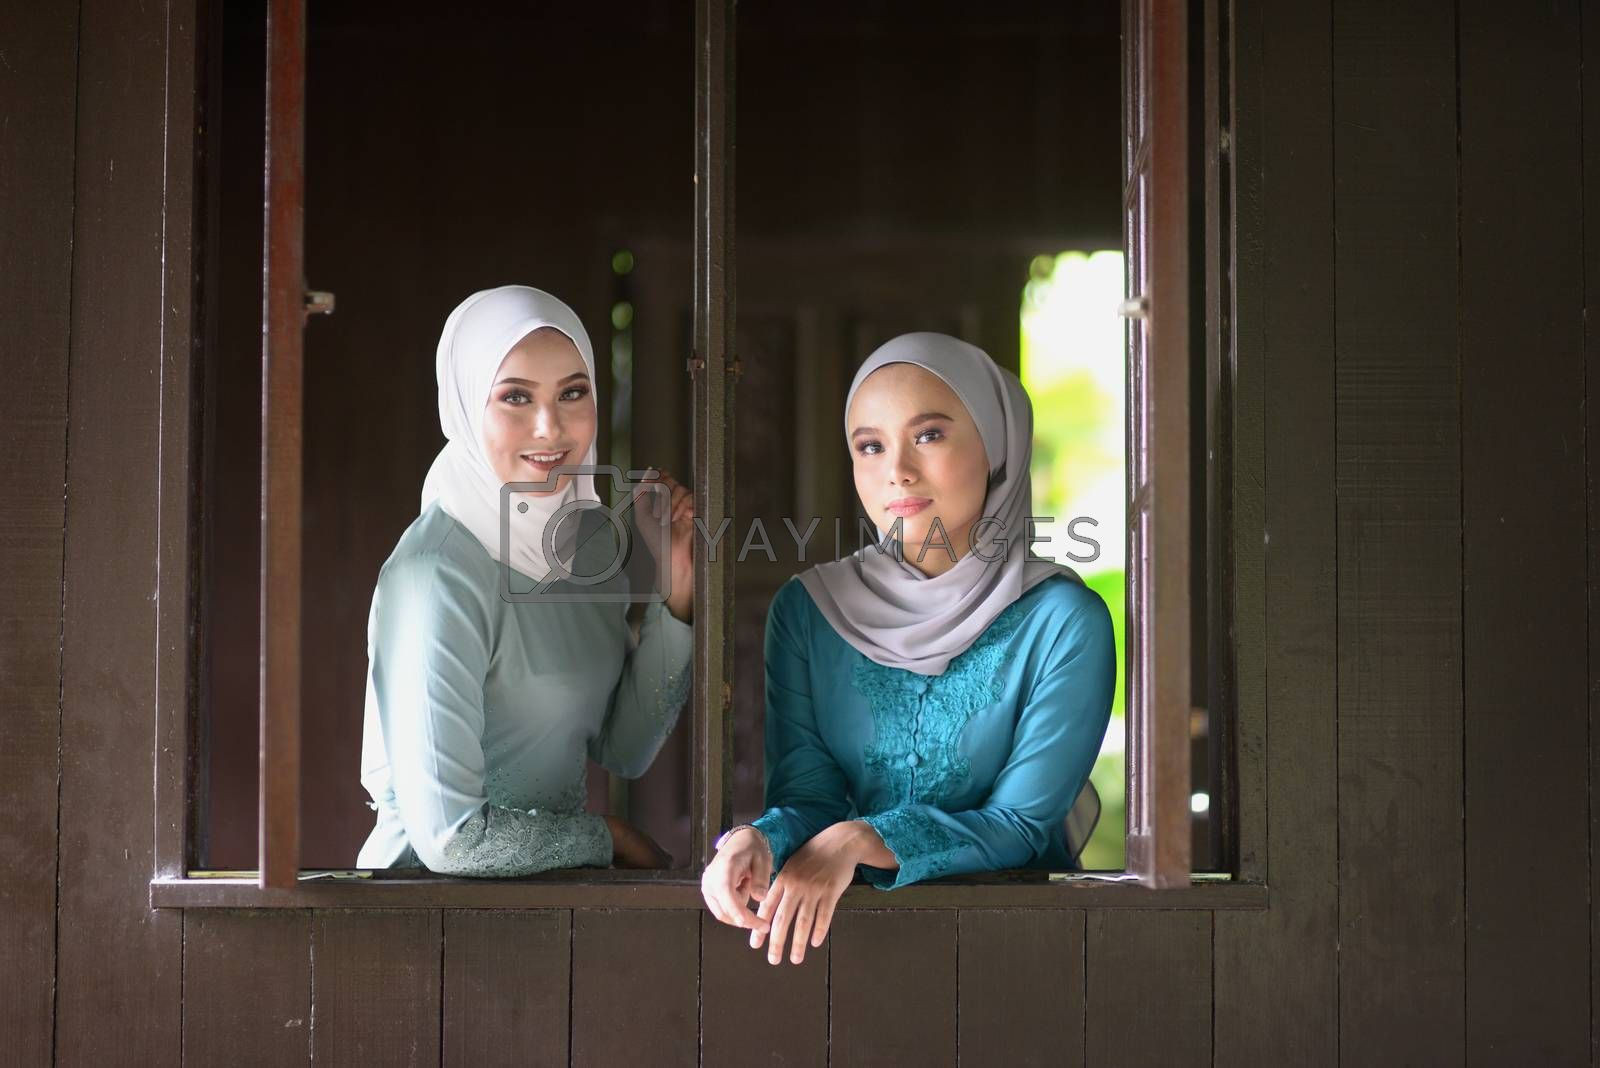 Portrait of Muslim girls in hijab smiling at traditional wooden house.